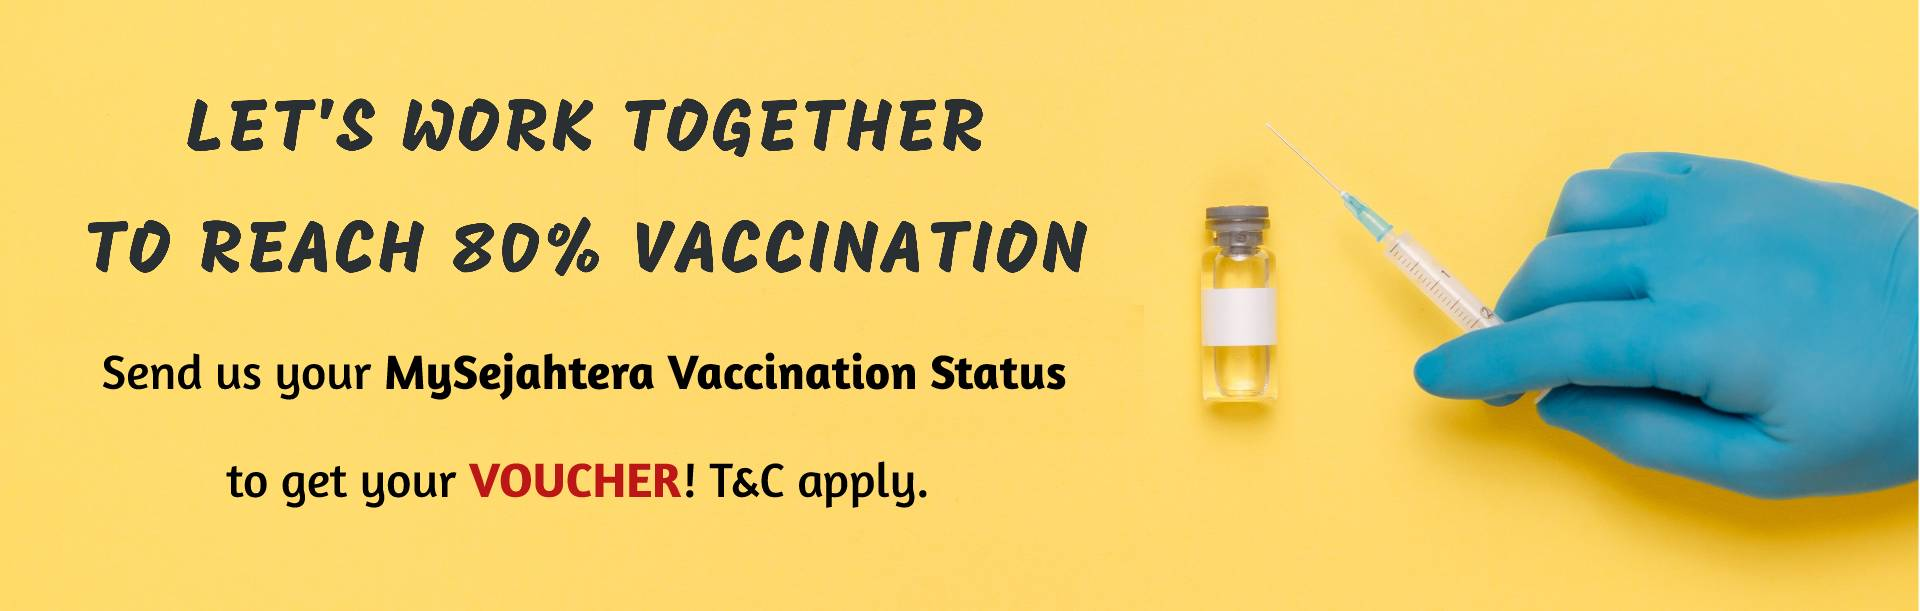 2021 Vaccination Promotion